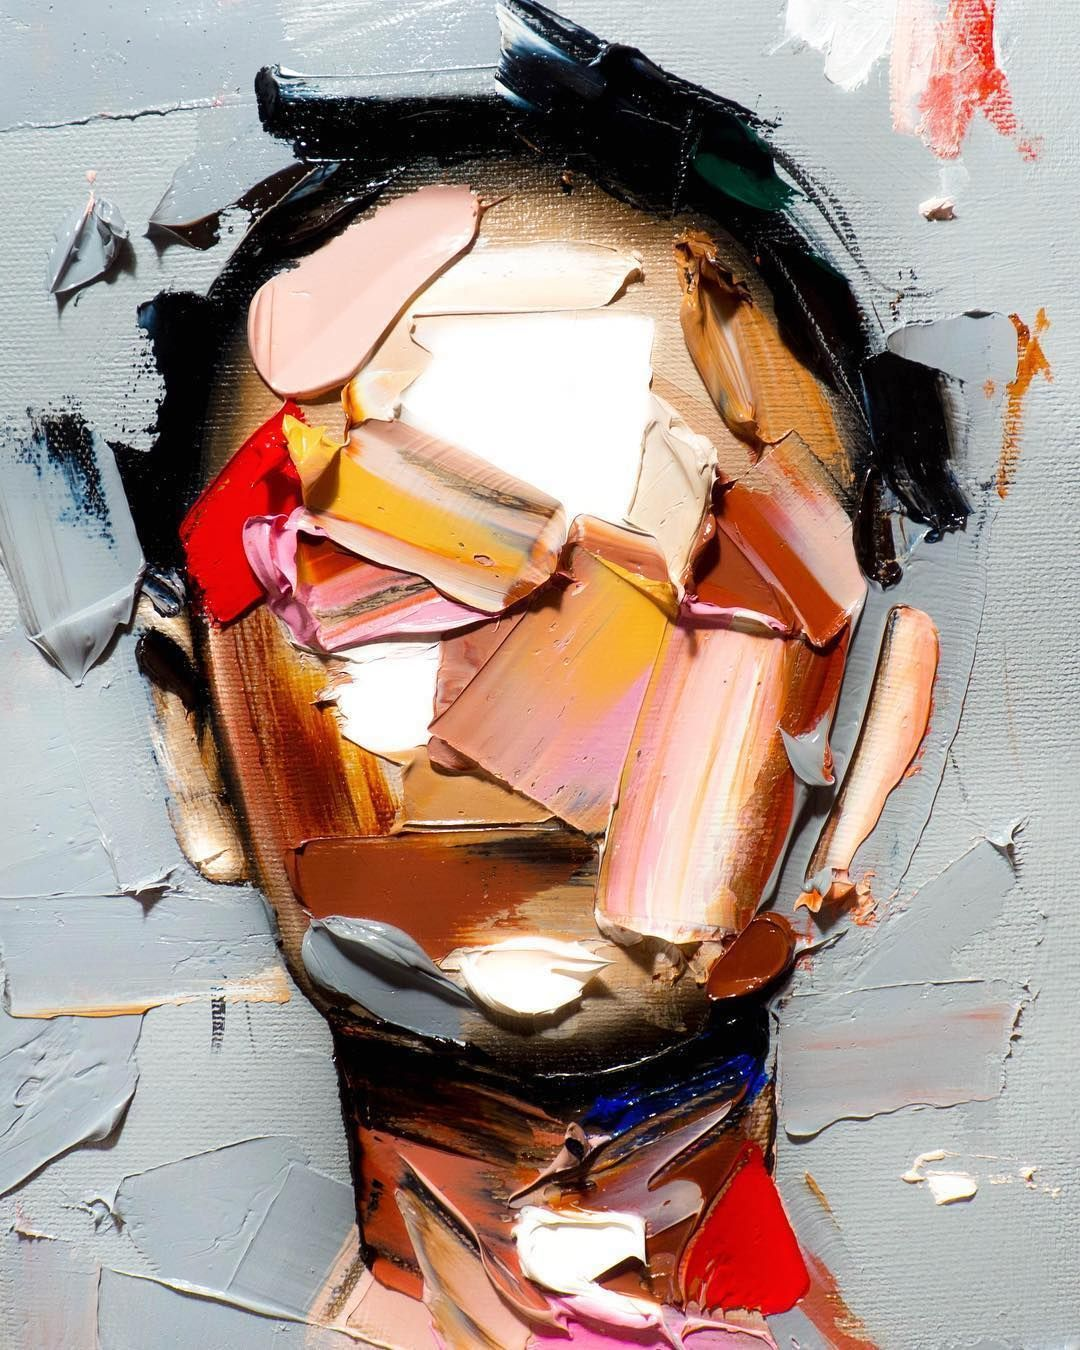 Thick Strokes of Paint Create Featureless Portraits in Abstracted Paintings by Joseph Lee